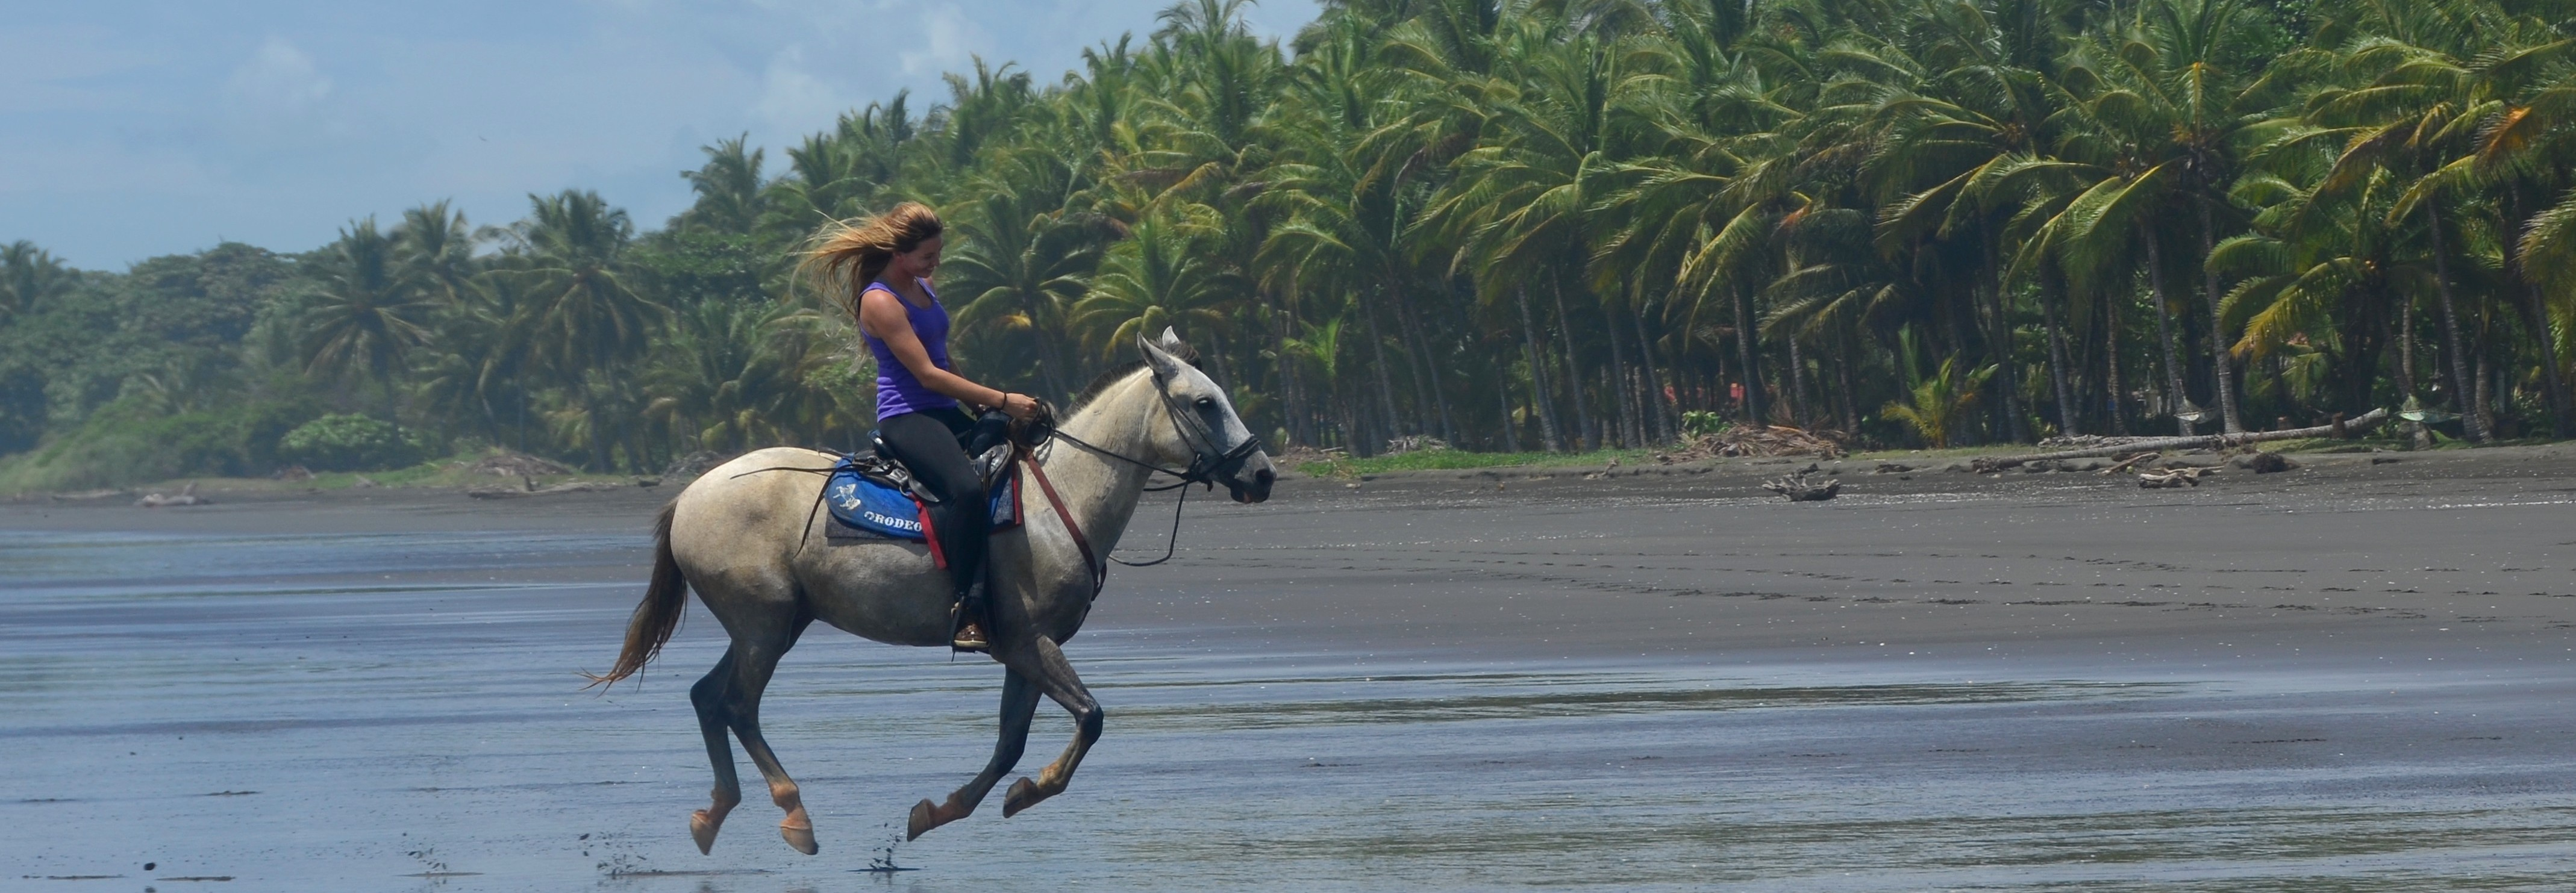 The Riding Adventure - Costa Rica horseback riding